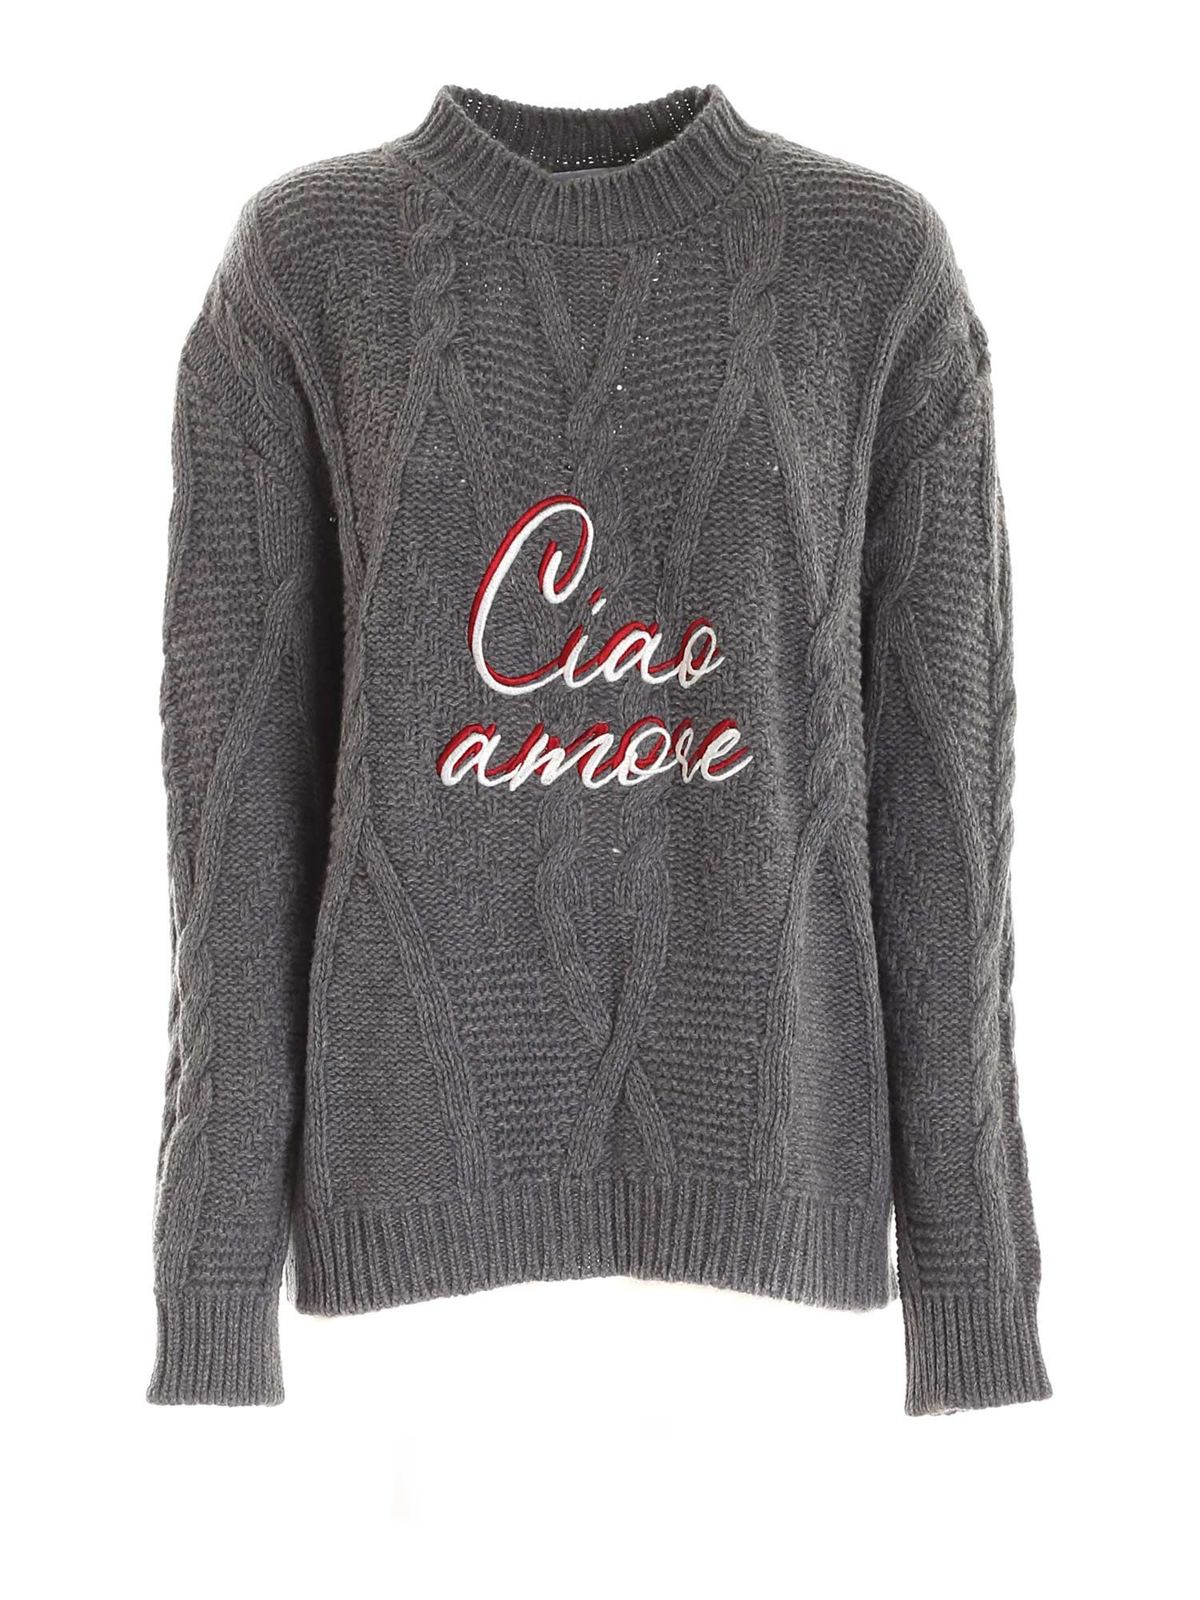 Giada Benincasa EMBROIDERY CREWNECK SWEATER IN GREY